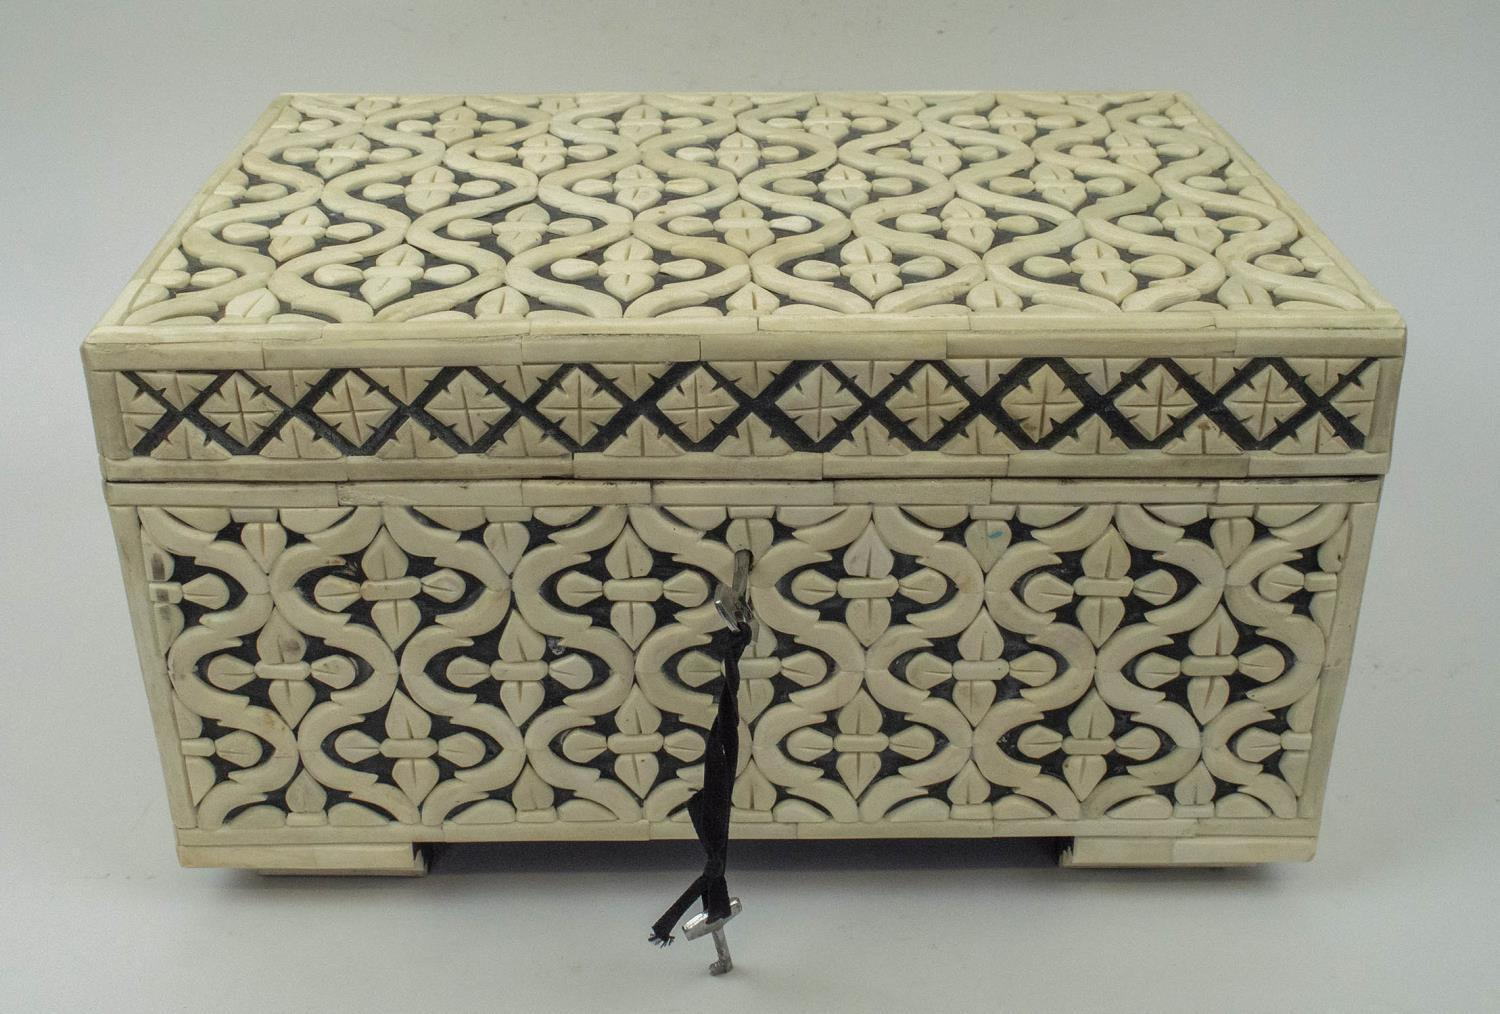 CASKET, bone geometric clad with hinged top and interior tray, 22cm H x 38cm x 25cm.